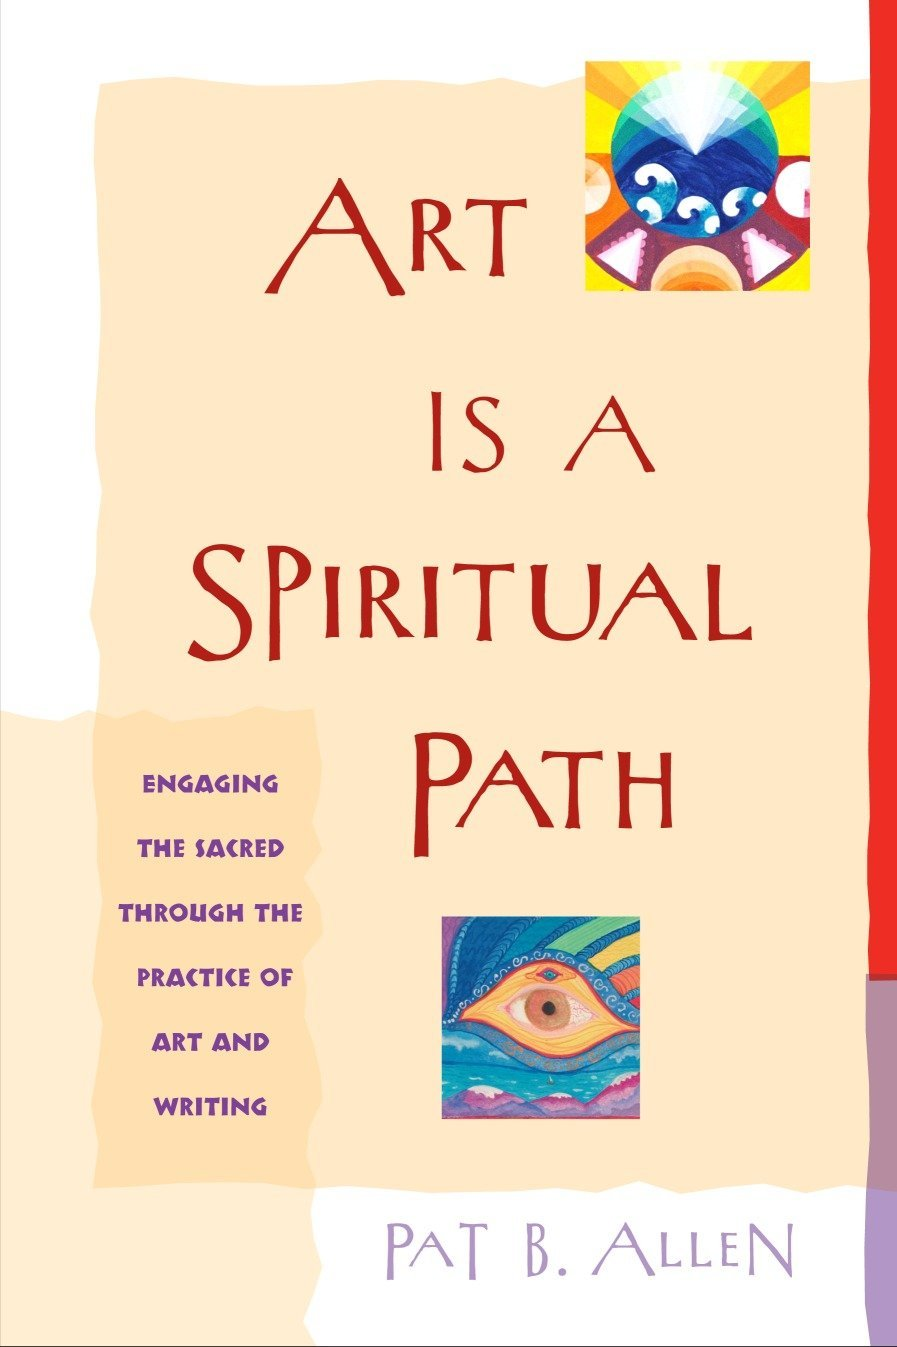 Amazon.com: Art Is a Spiritual Path: Engaging the Sacred through the  Practice of Art and Writing (9781590302101): Pat B. Allen: Books